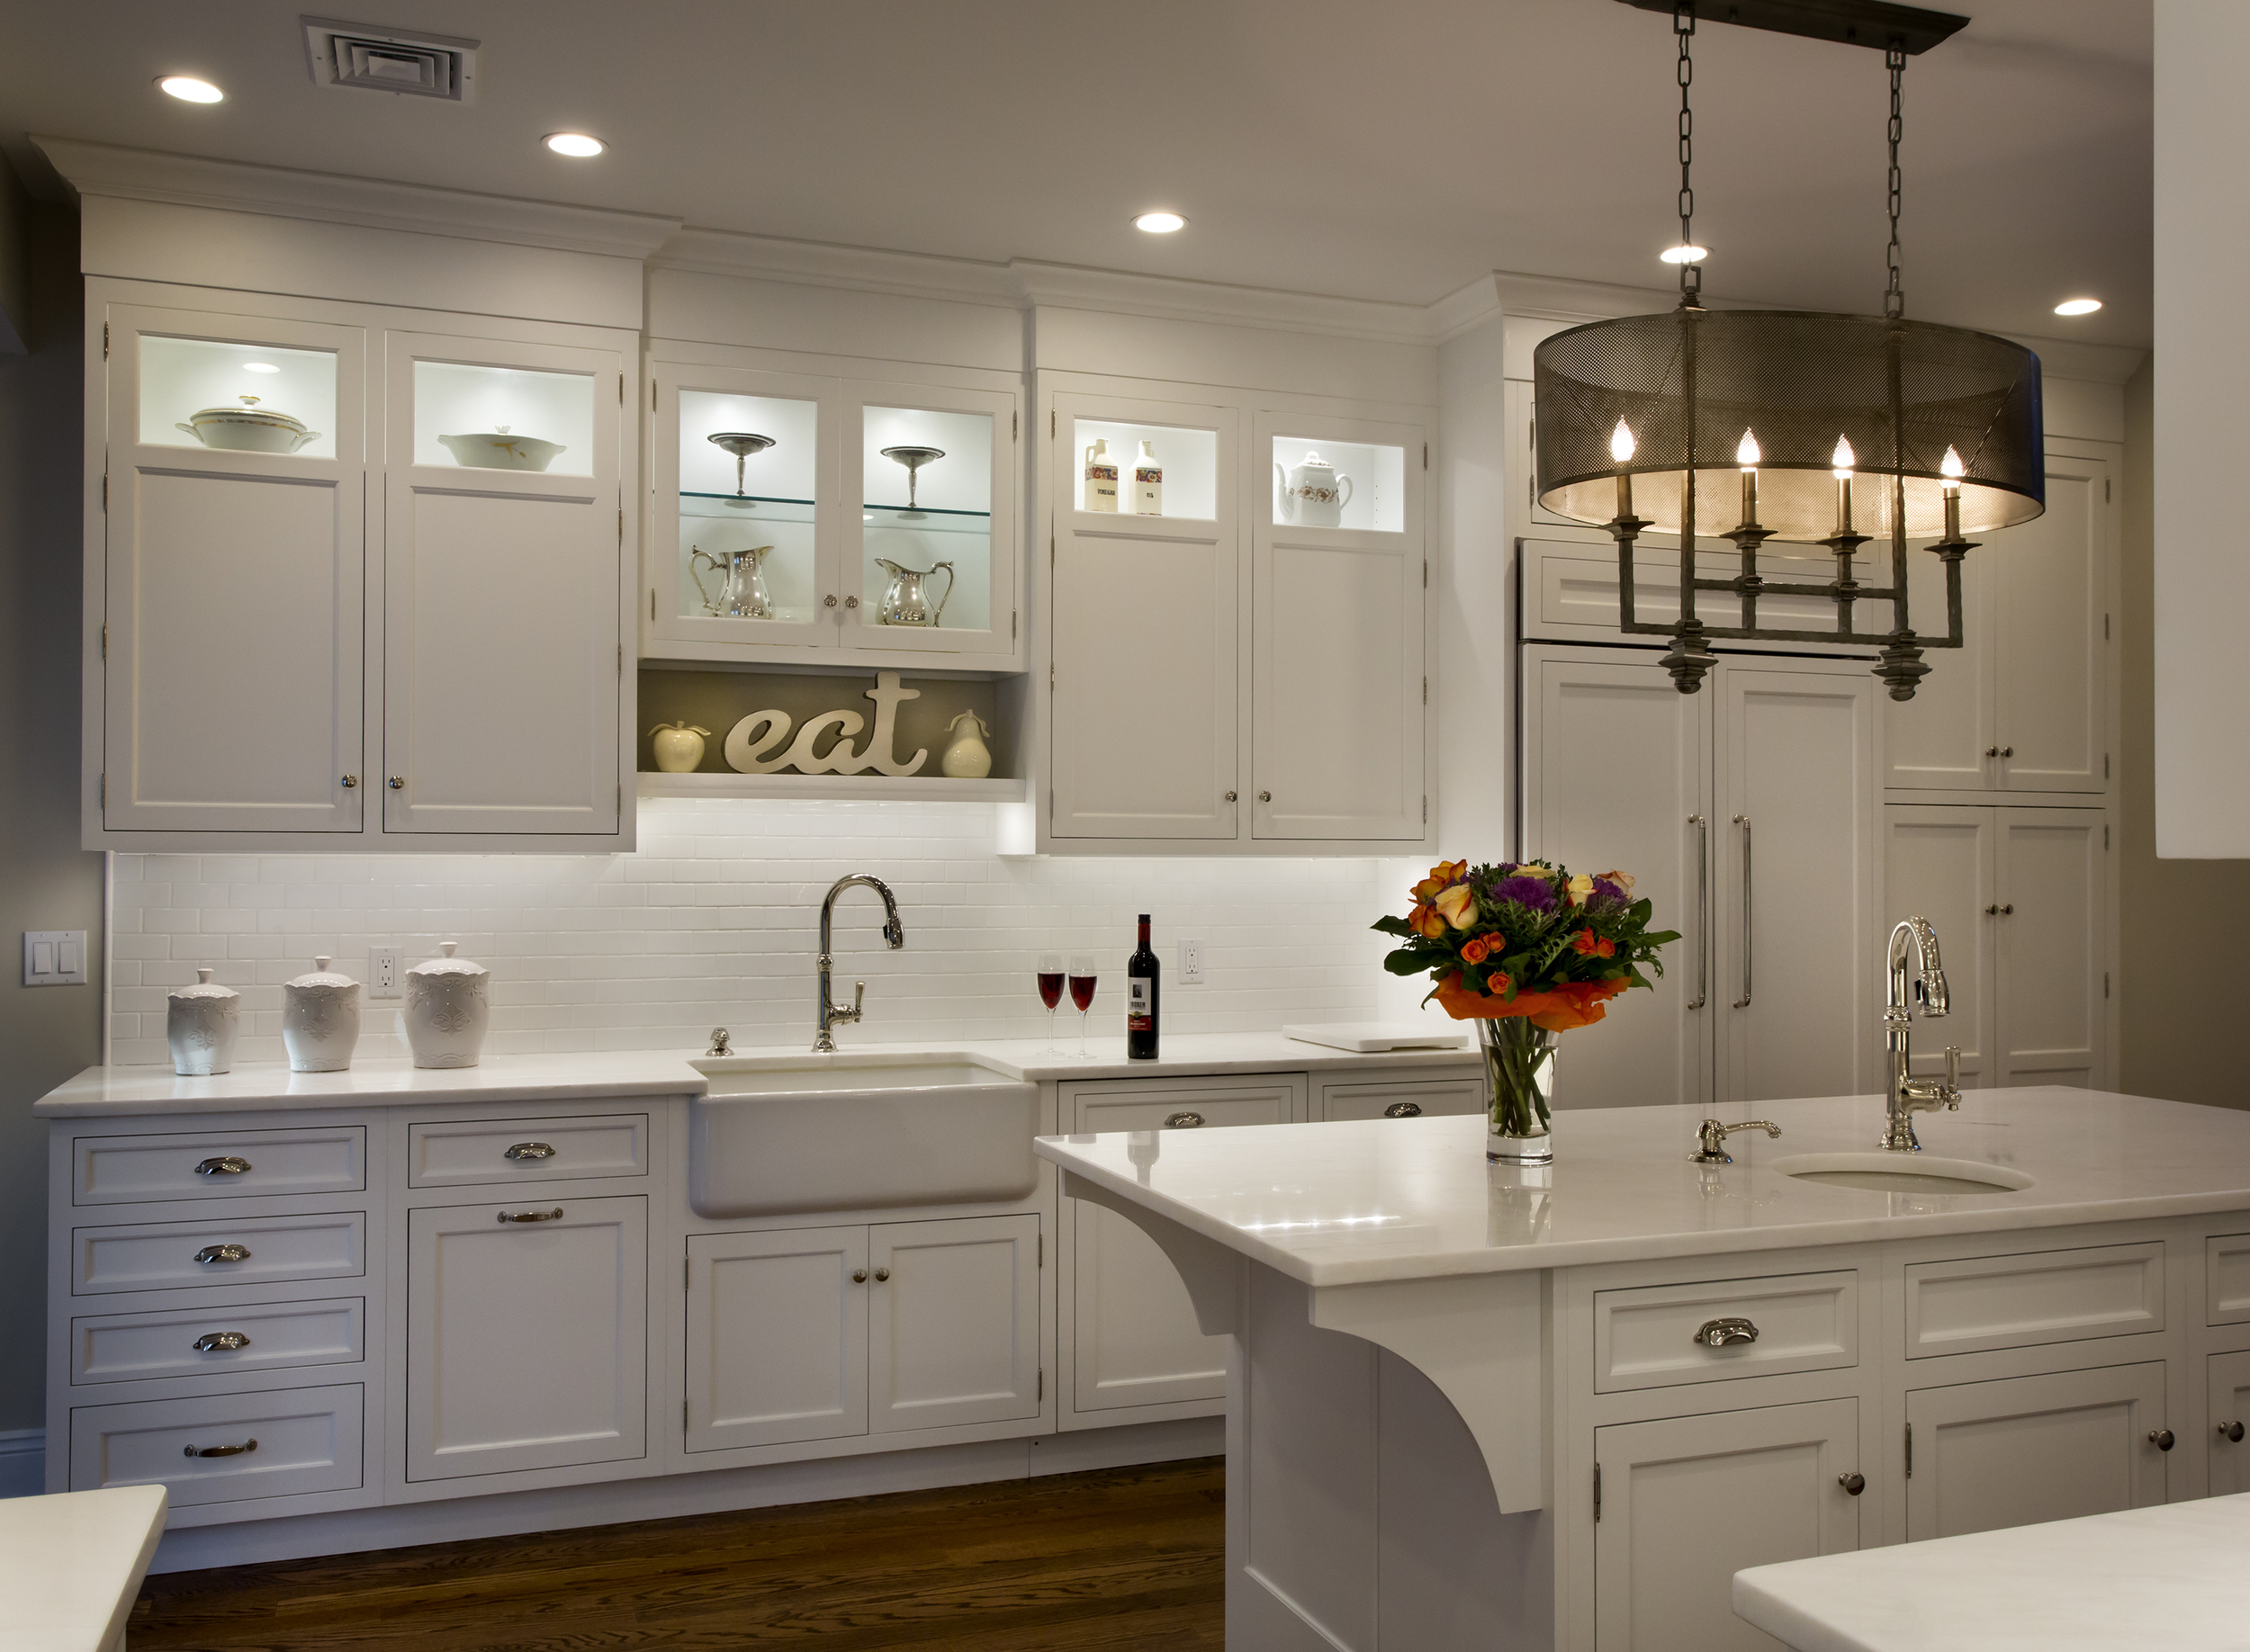 Kitchen Remodeling - Cabinetry & Design Showroom Long Island & NYC on interior design nyc, terrace design nyc, advertising nyc, massage therapy nyc, landscape design nyc, bar design nyc, fashion design nyc, restaurants nyc, architecture nyc, patio design nyc, furniture design nyc, health insurance nyc, roof design nyc, food design nyc, modern apartment design nyc, house design nyc, floral design nyc,